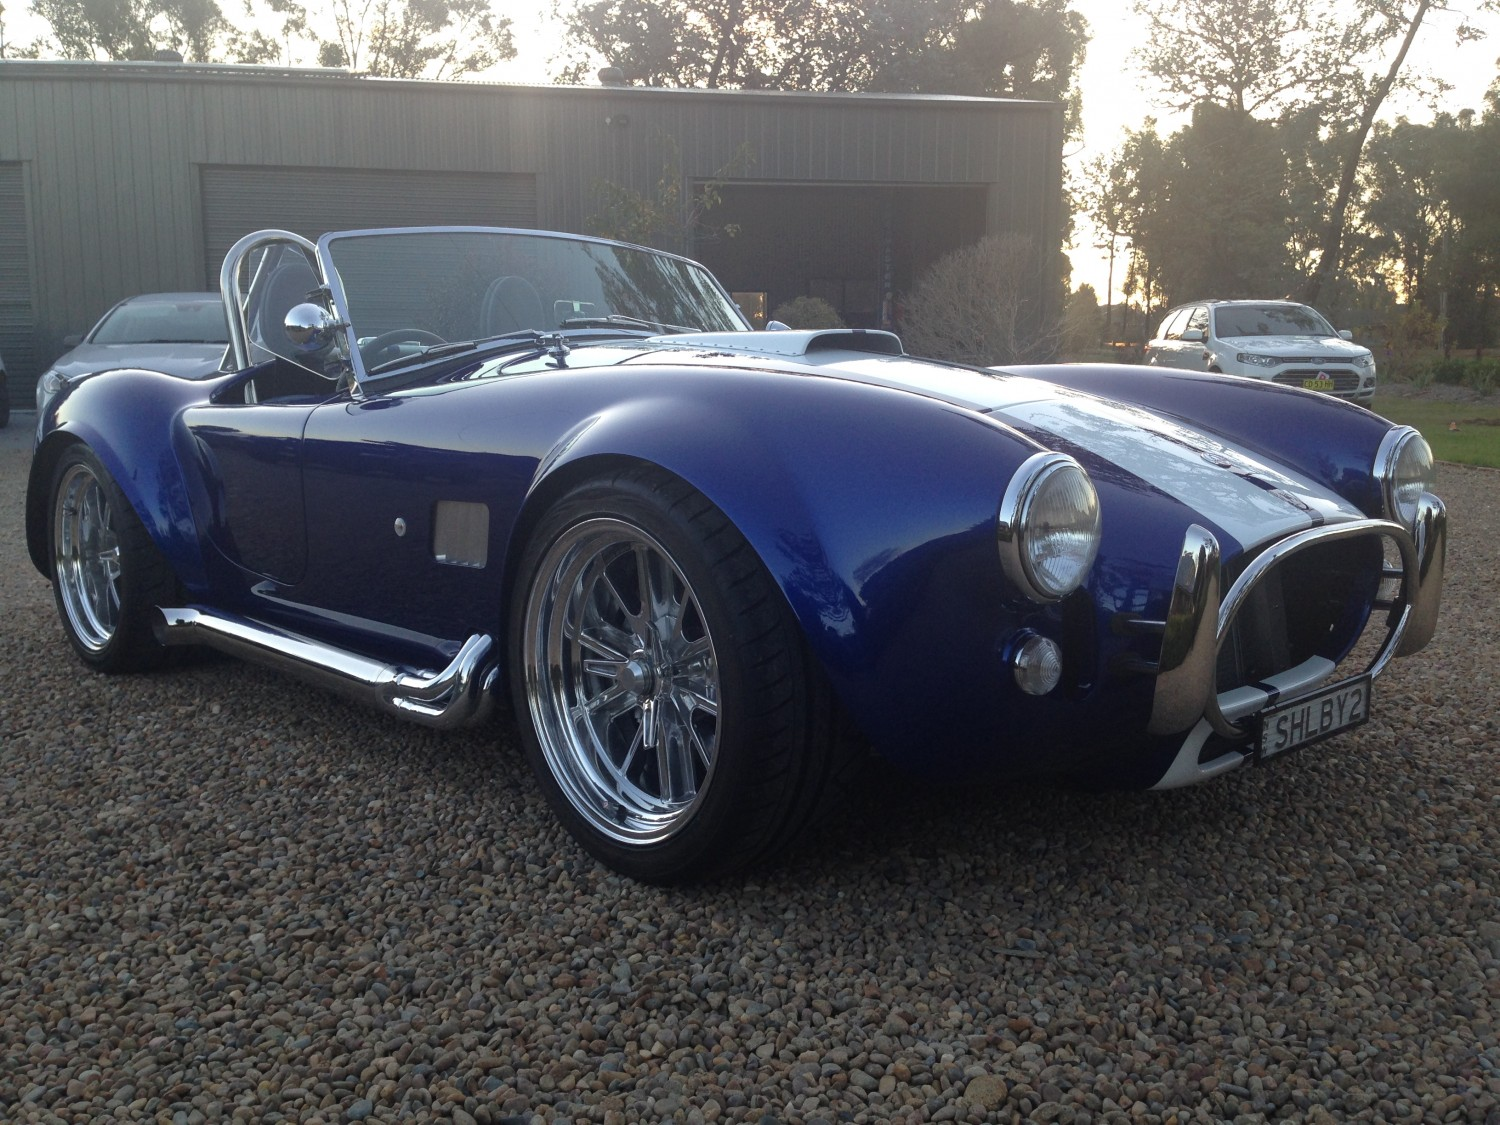 All finished ready to enjoy some Cobra driving again,Huddo